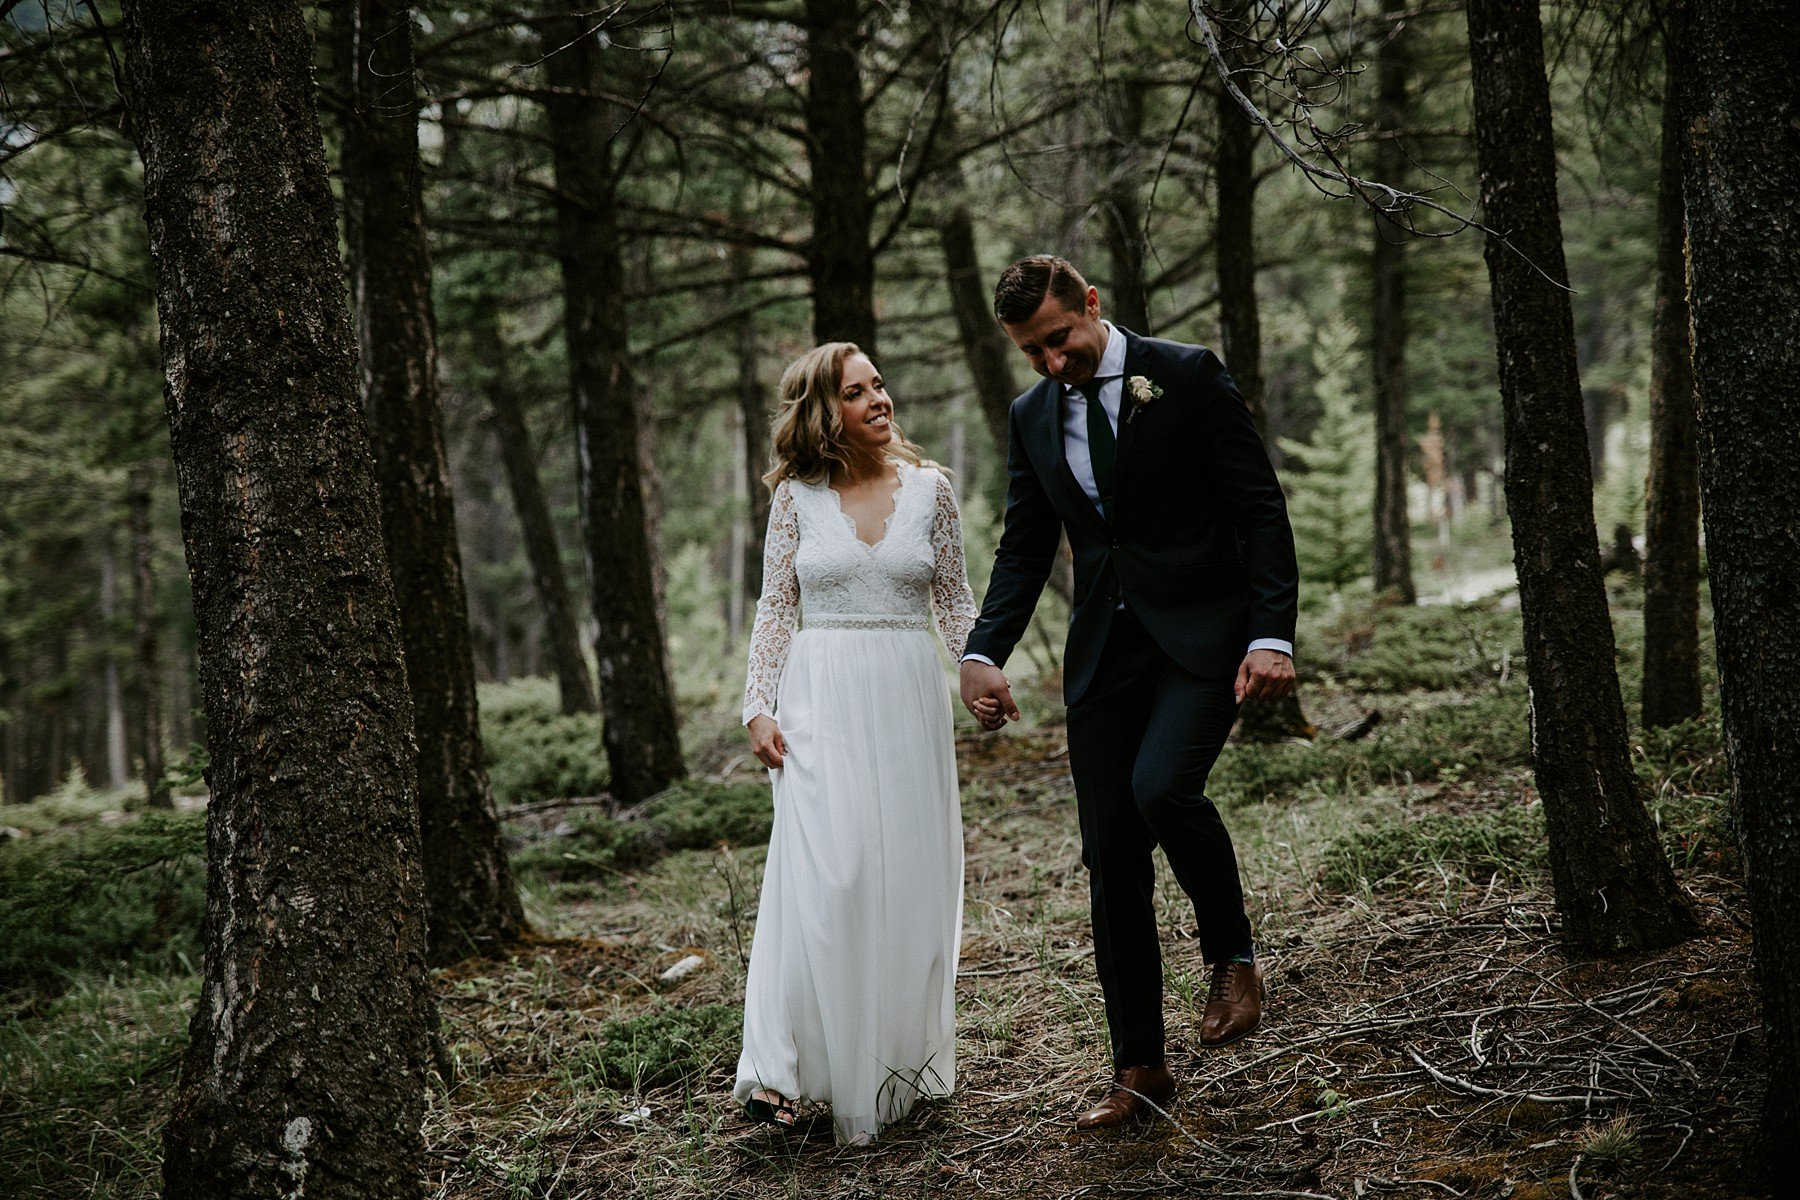 Teller of Tales Photography - Elopement - Tunnel Mountain Banff-88.jpg